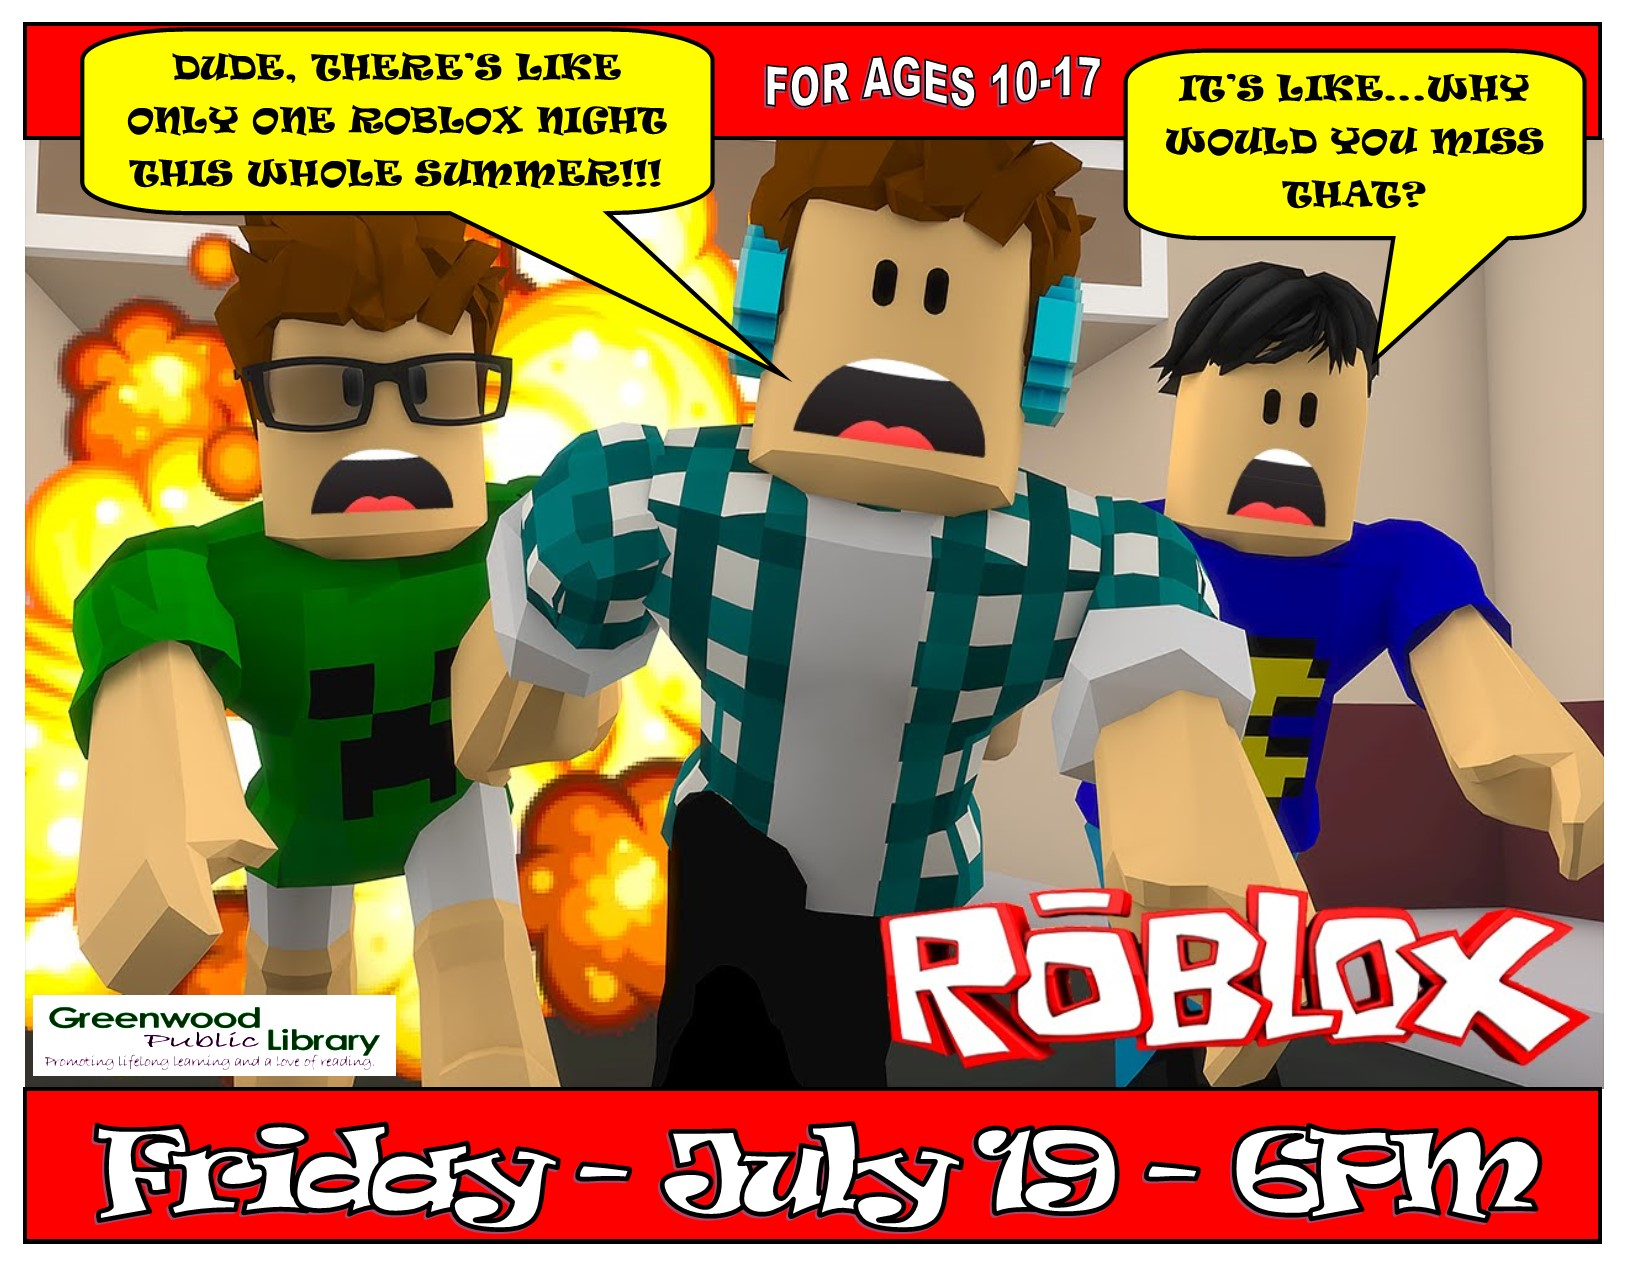 Roblox Night for Teens and Tweens